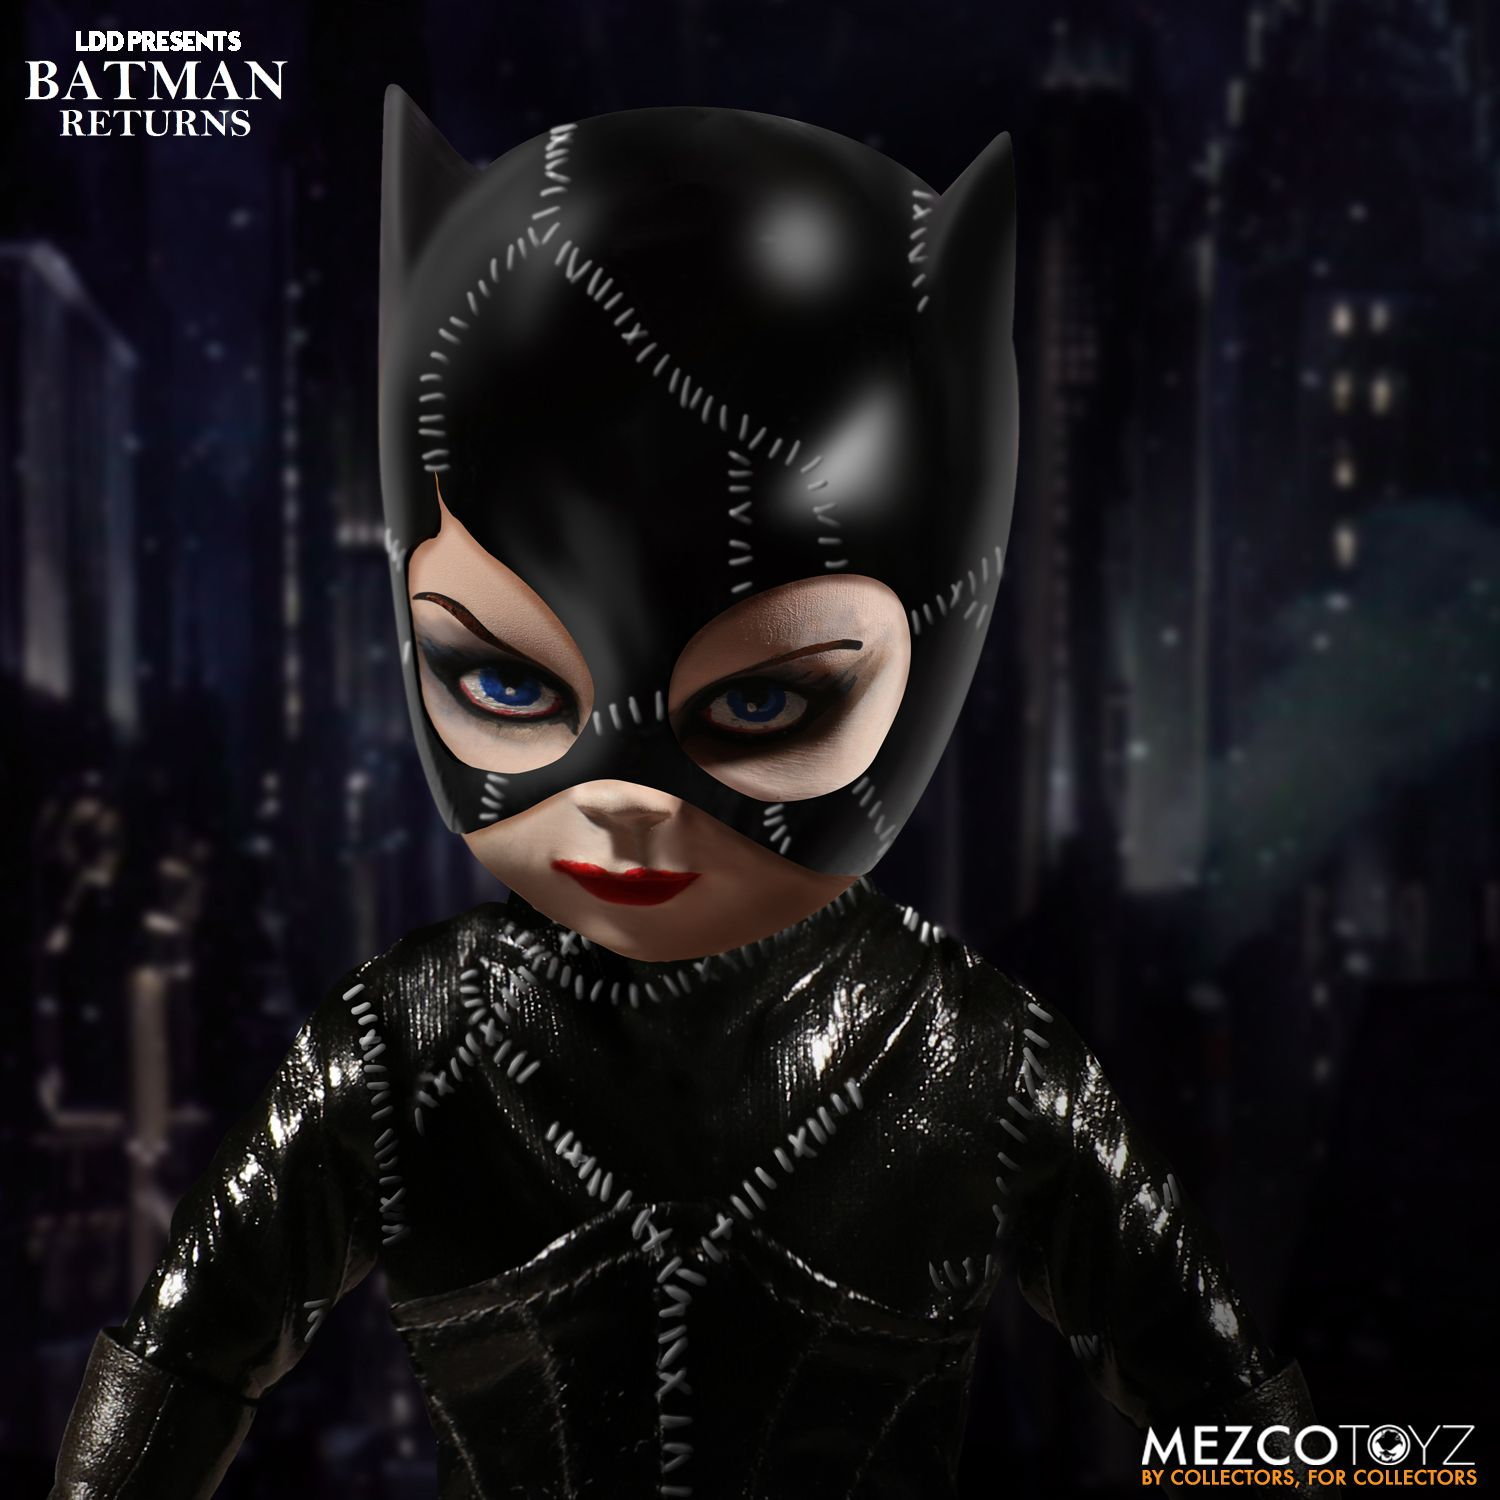 Ldd Presents Batman Returns Catwoman Mezco Toyz